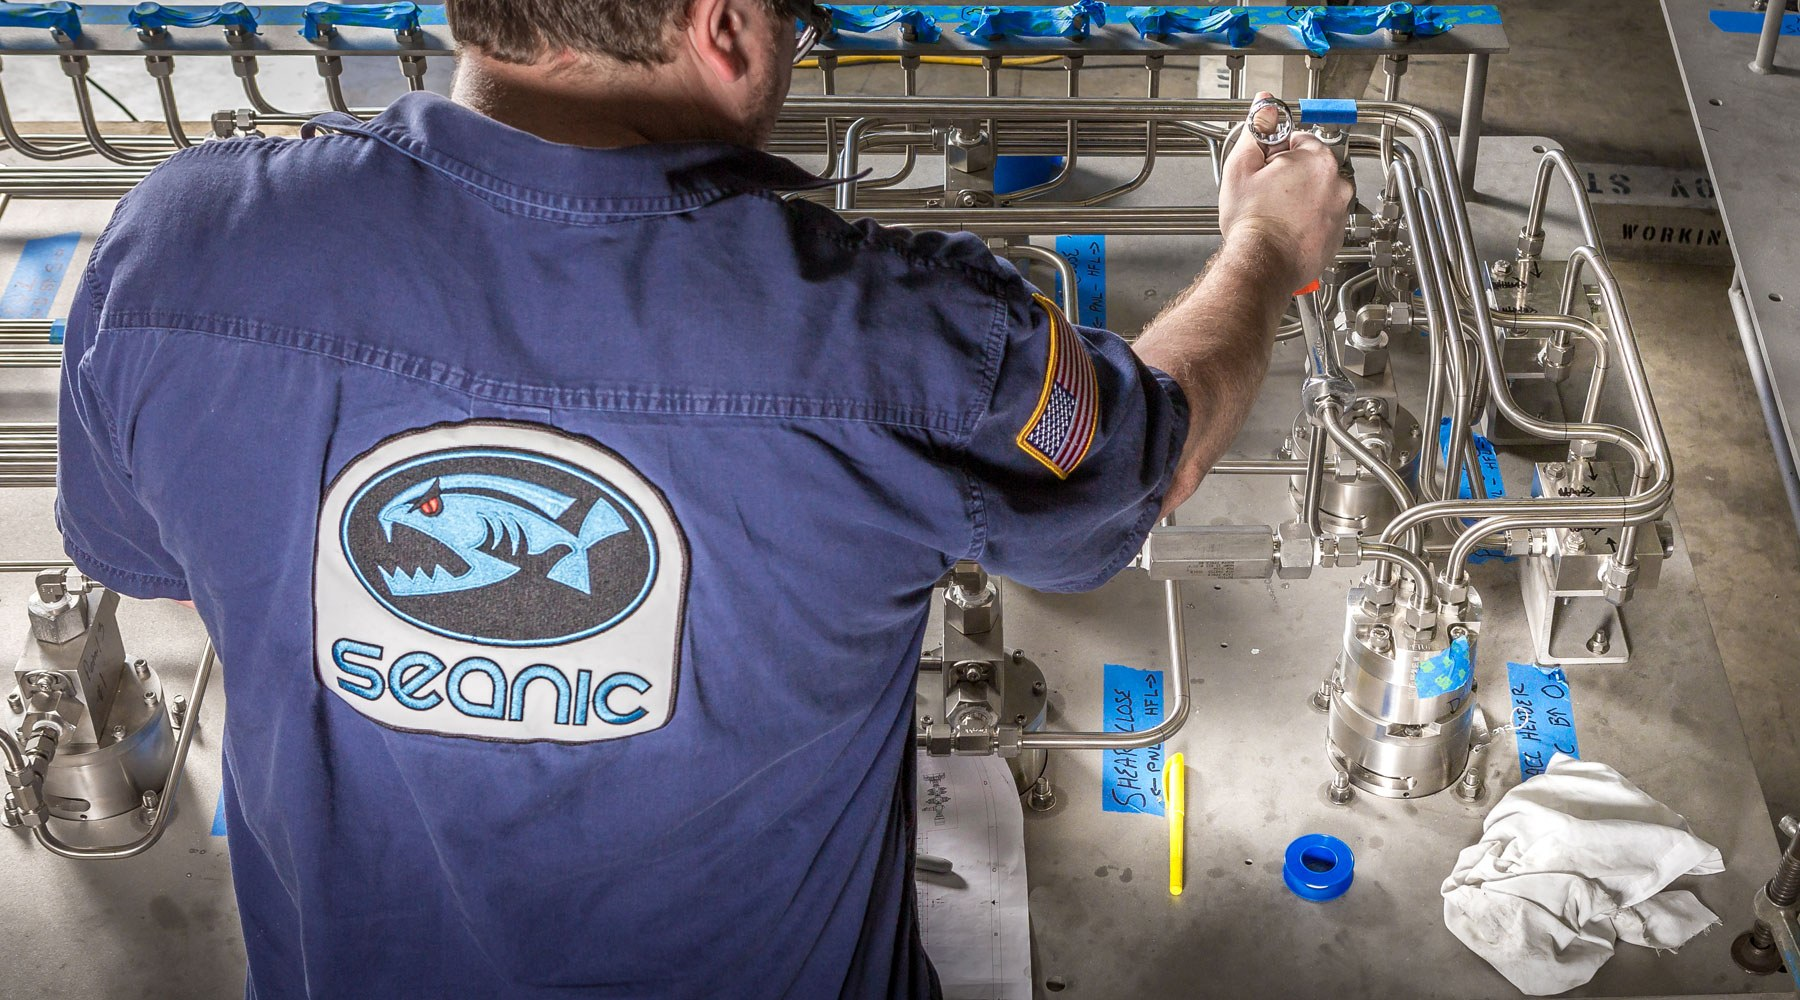 Man wearing Seanic-branded shirt carrying out work on equipment